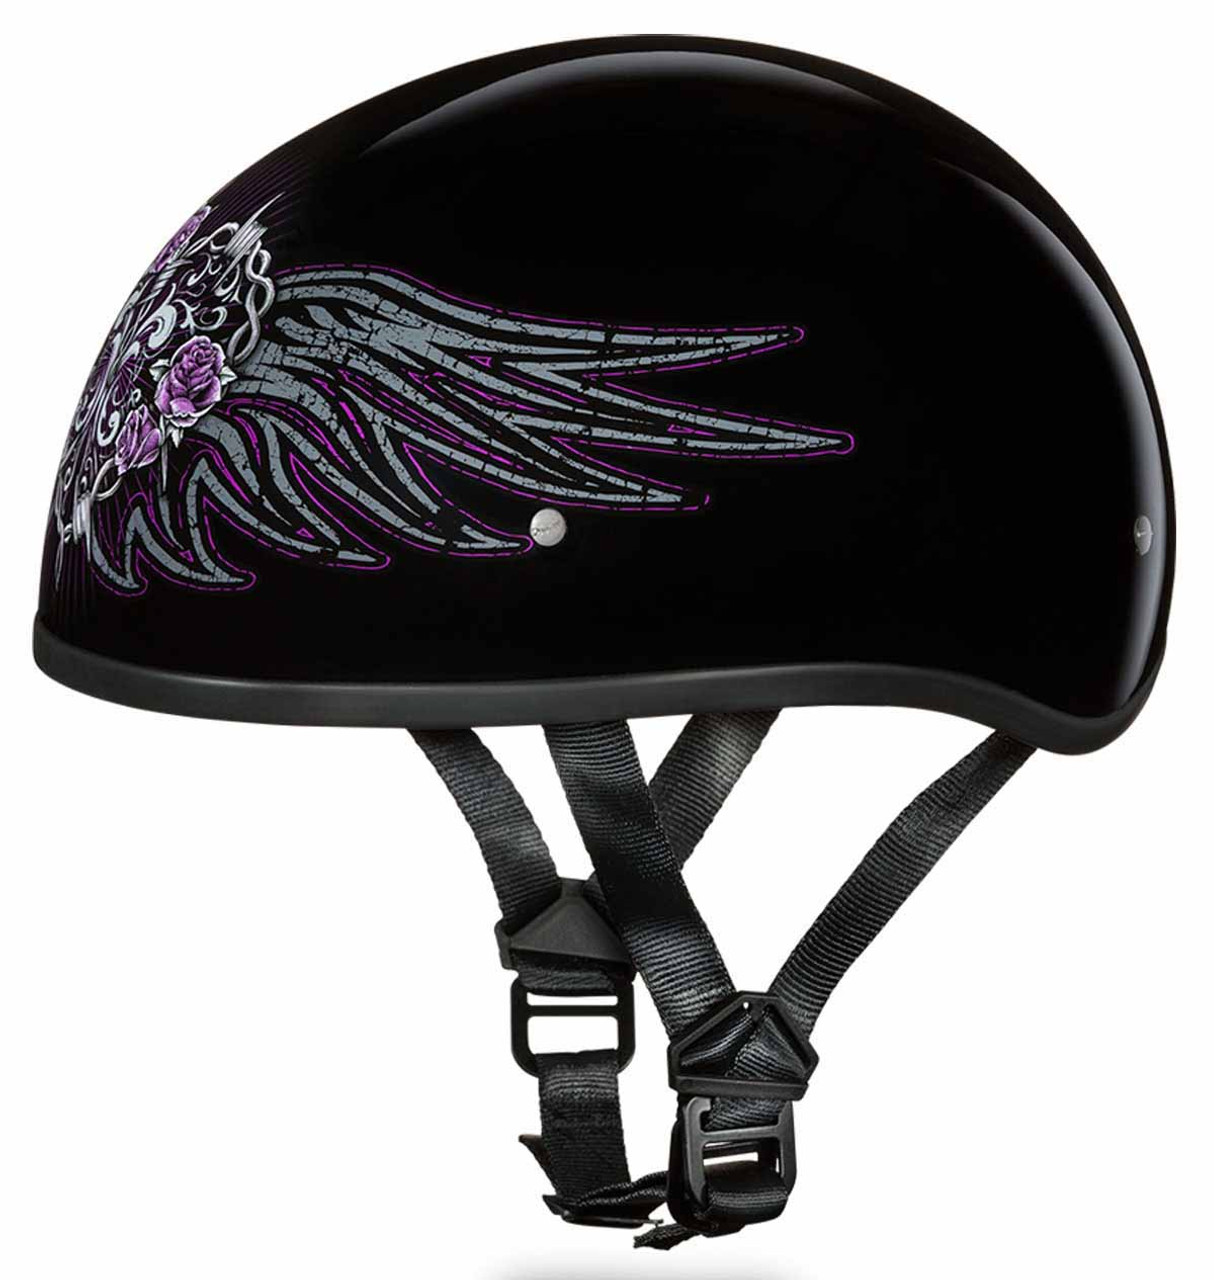 Helmet Rose And Barbed Wire Center Ammetervoltmetertransducer Meters Diagram Daytona Skull Cap Slim Line Heart Xtremehelmets Com Rh Roses Blog